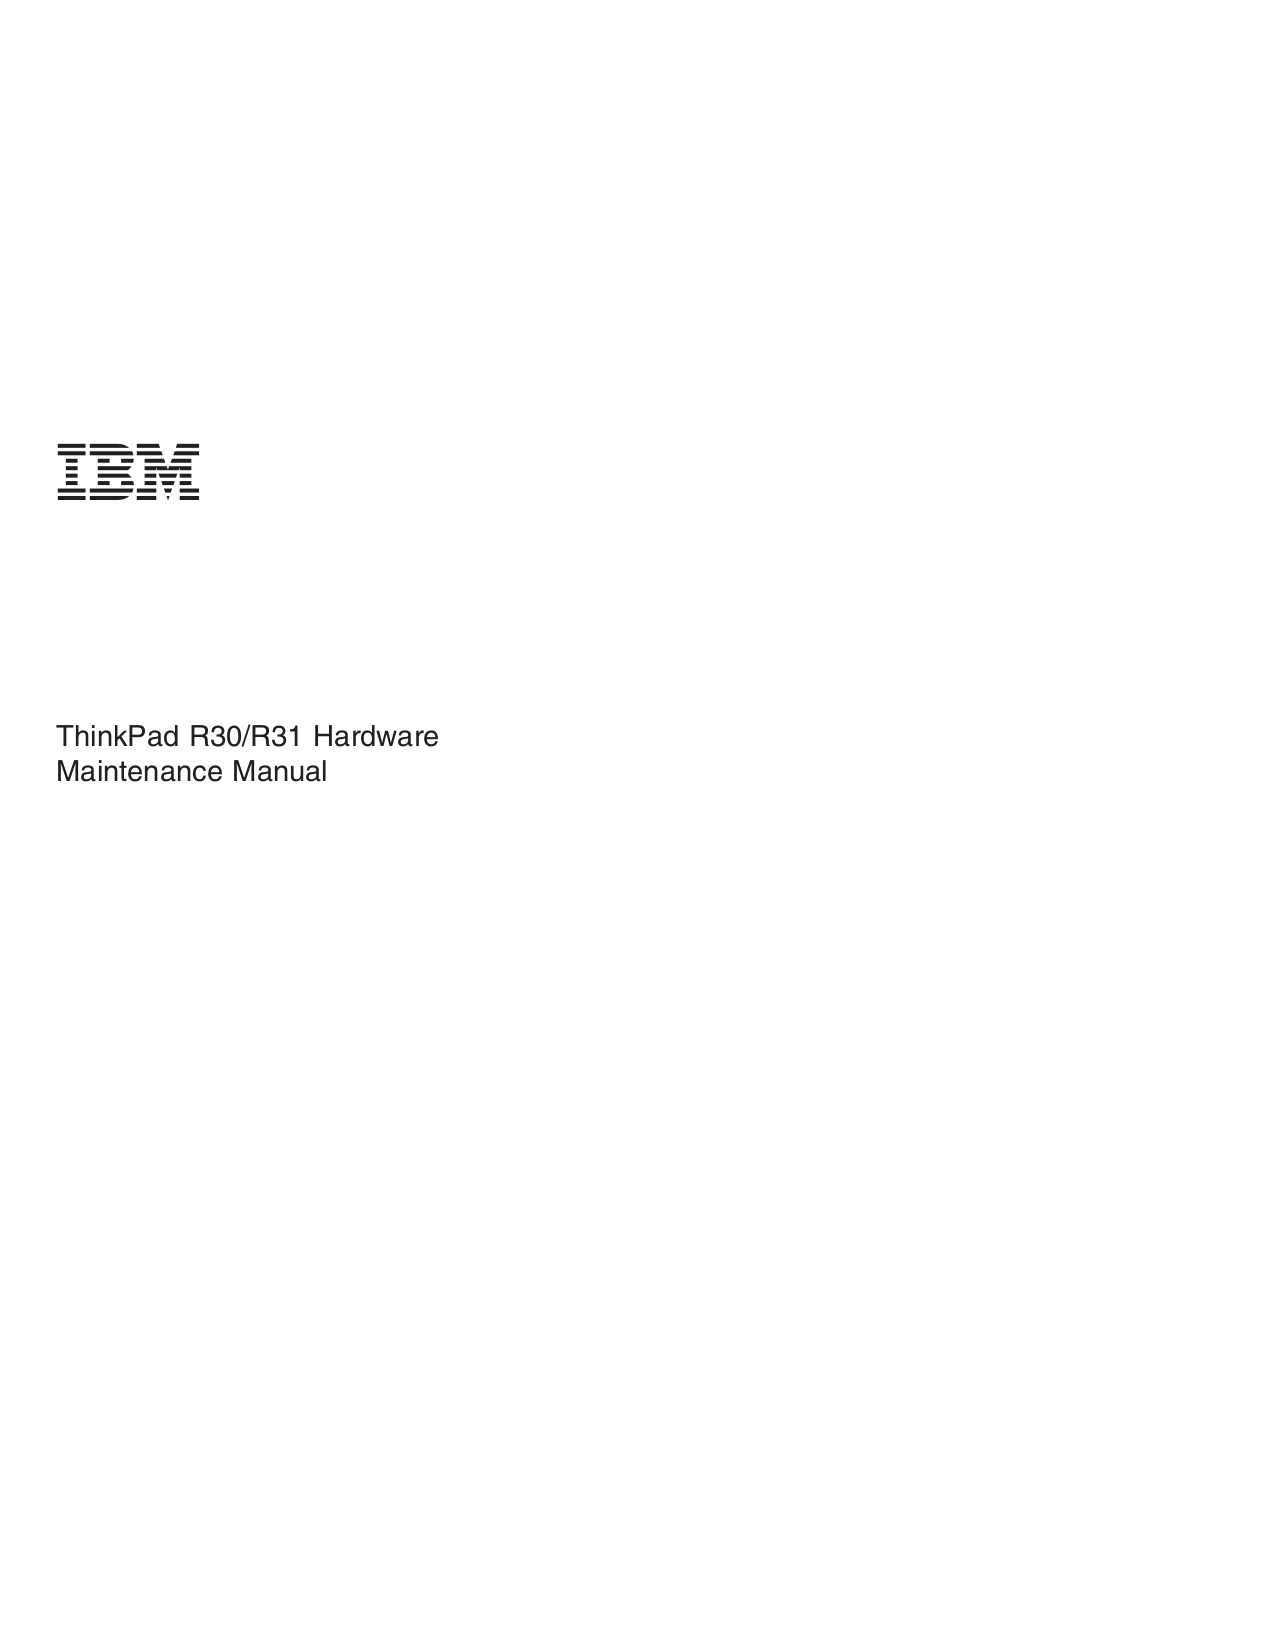 pdf for IBM Laptop ThinkPad R31 manual